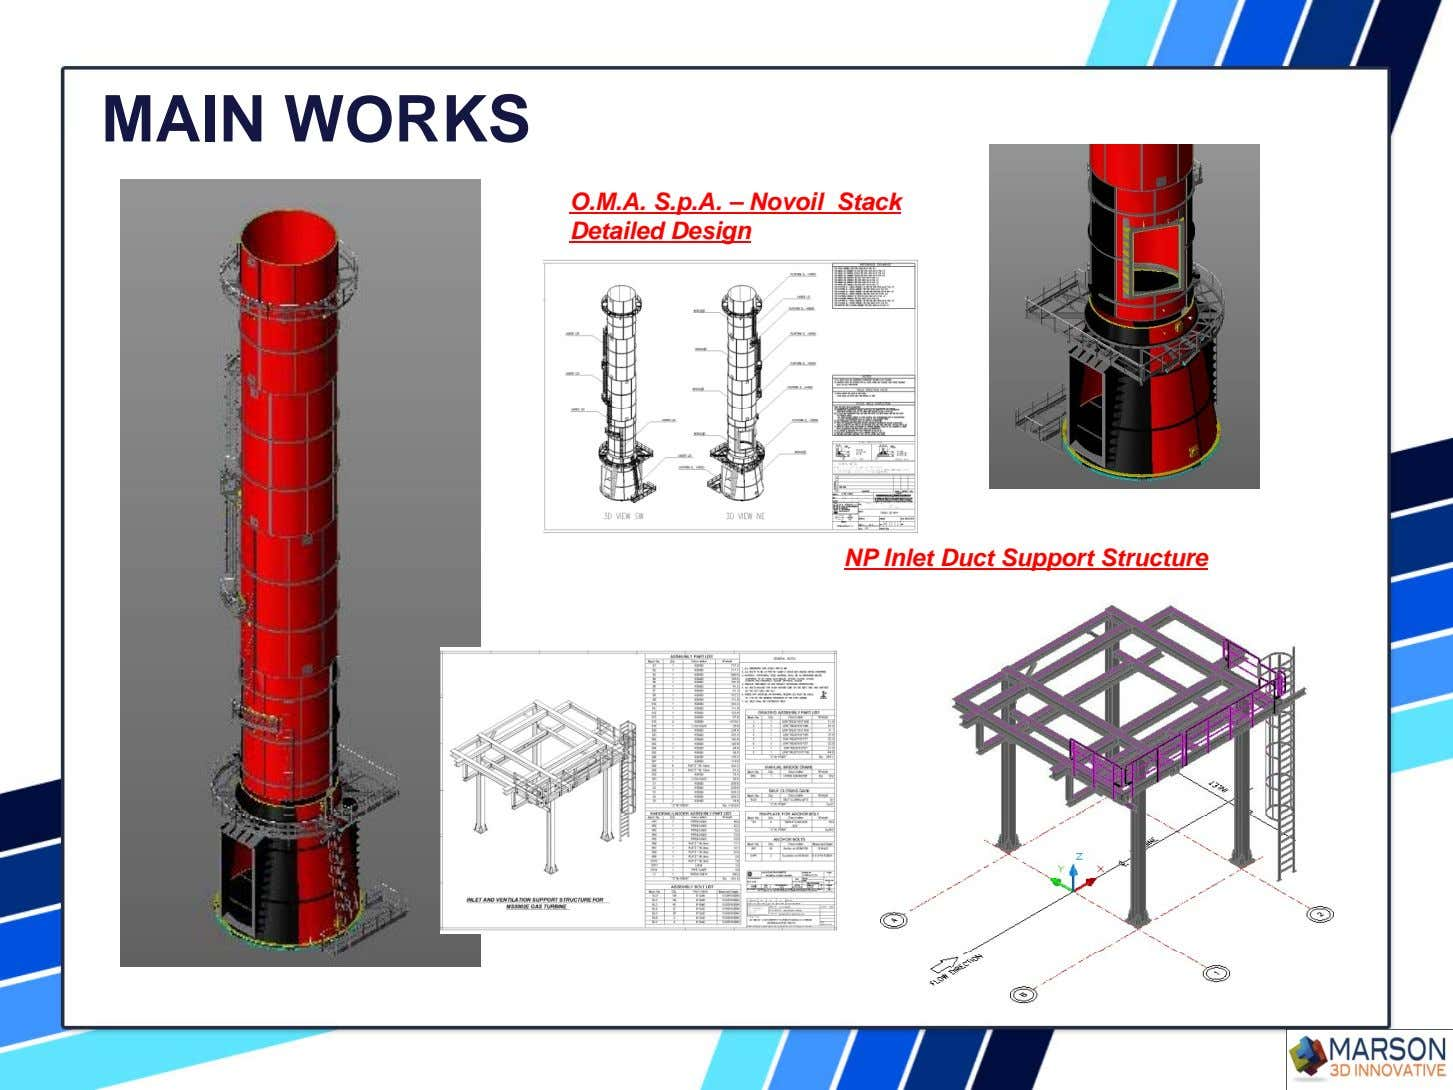 MAIN WORKS O.M.A. S.p.A. – Novoil Stack Detailed Design NP Inlet Duct Support Structure